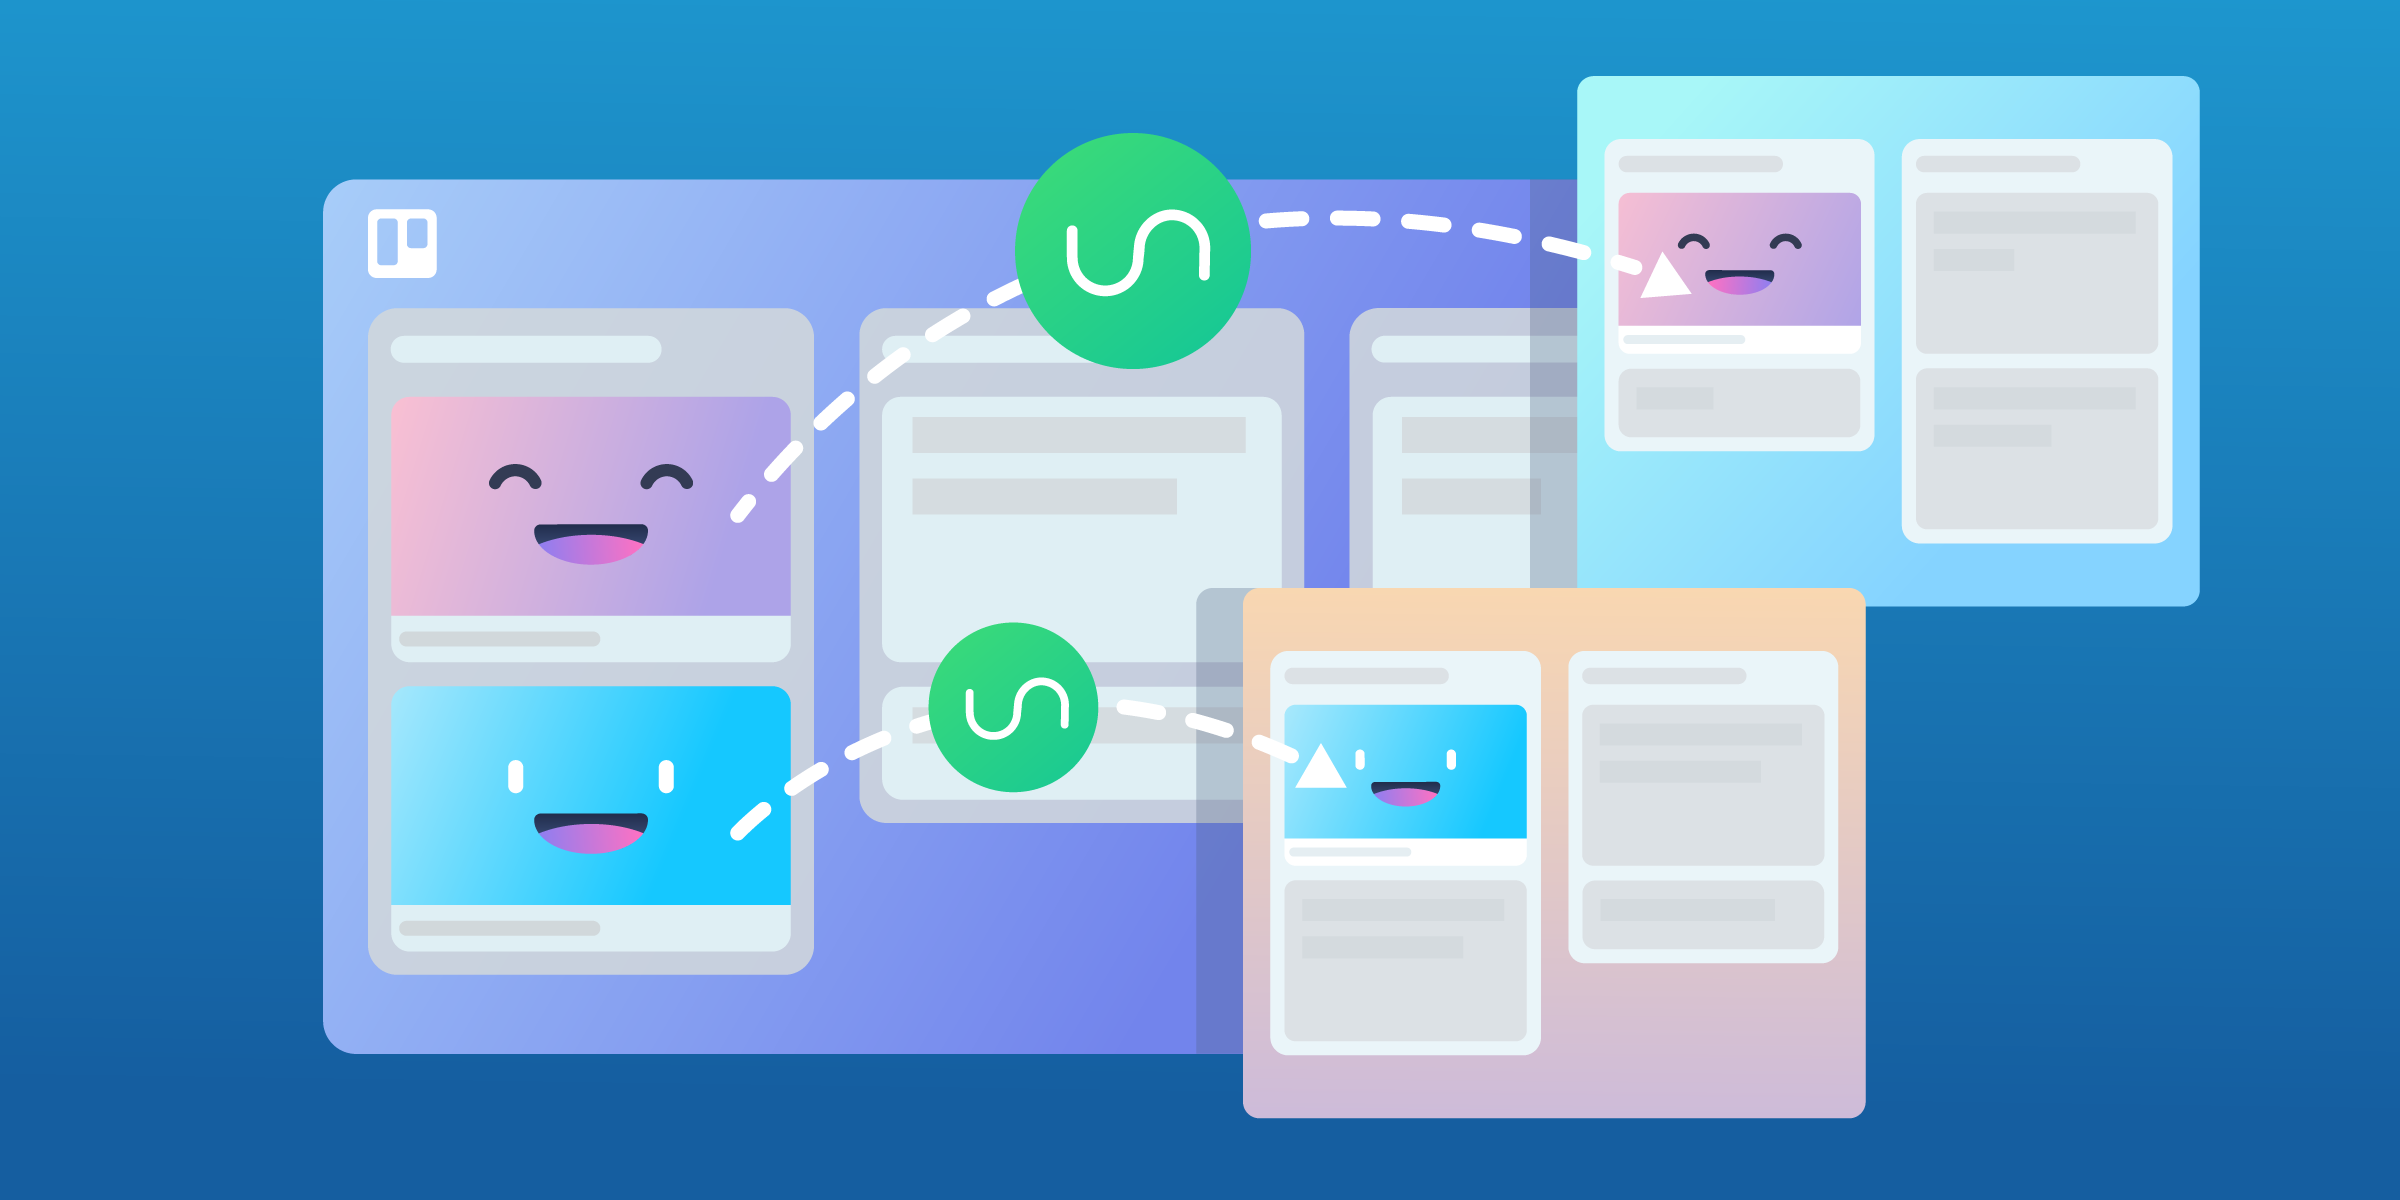 How To Make The Most Of Trello By Syncing Cards Across Multiple Boards